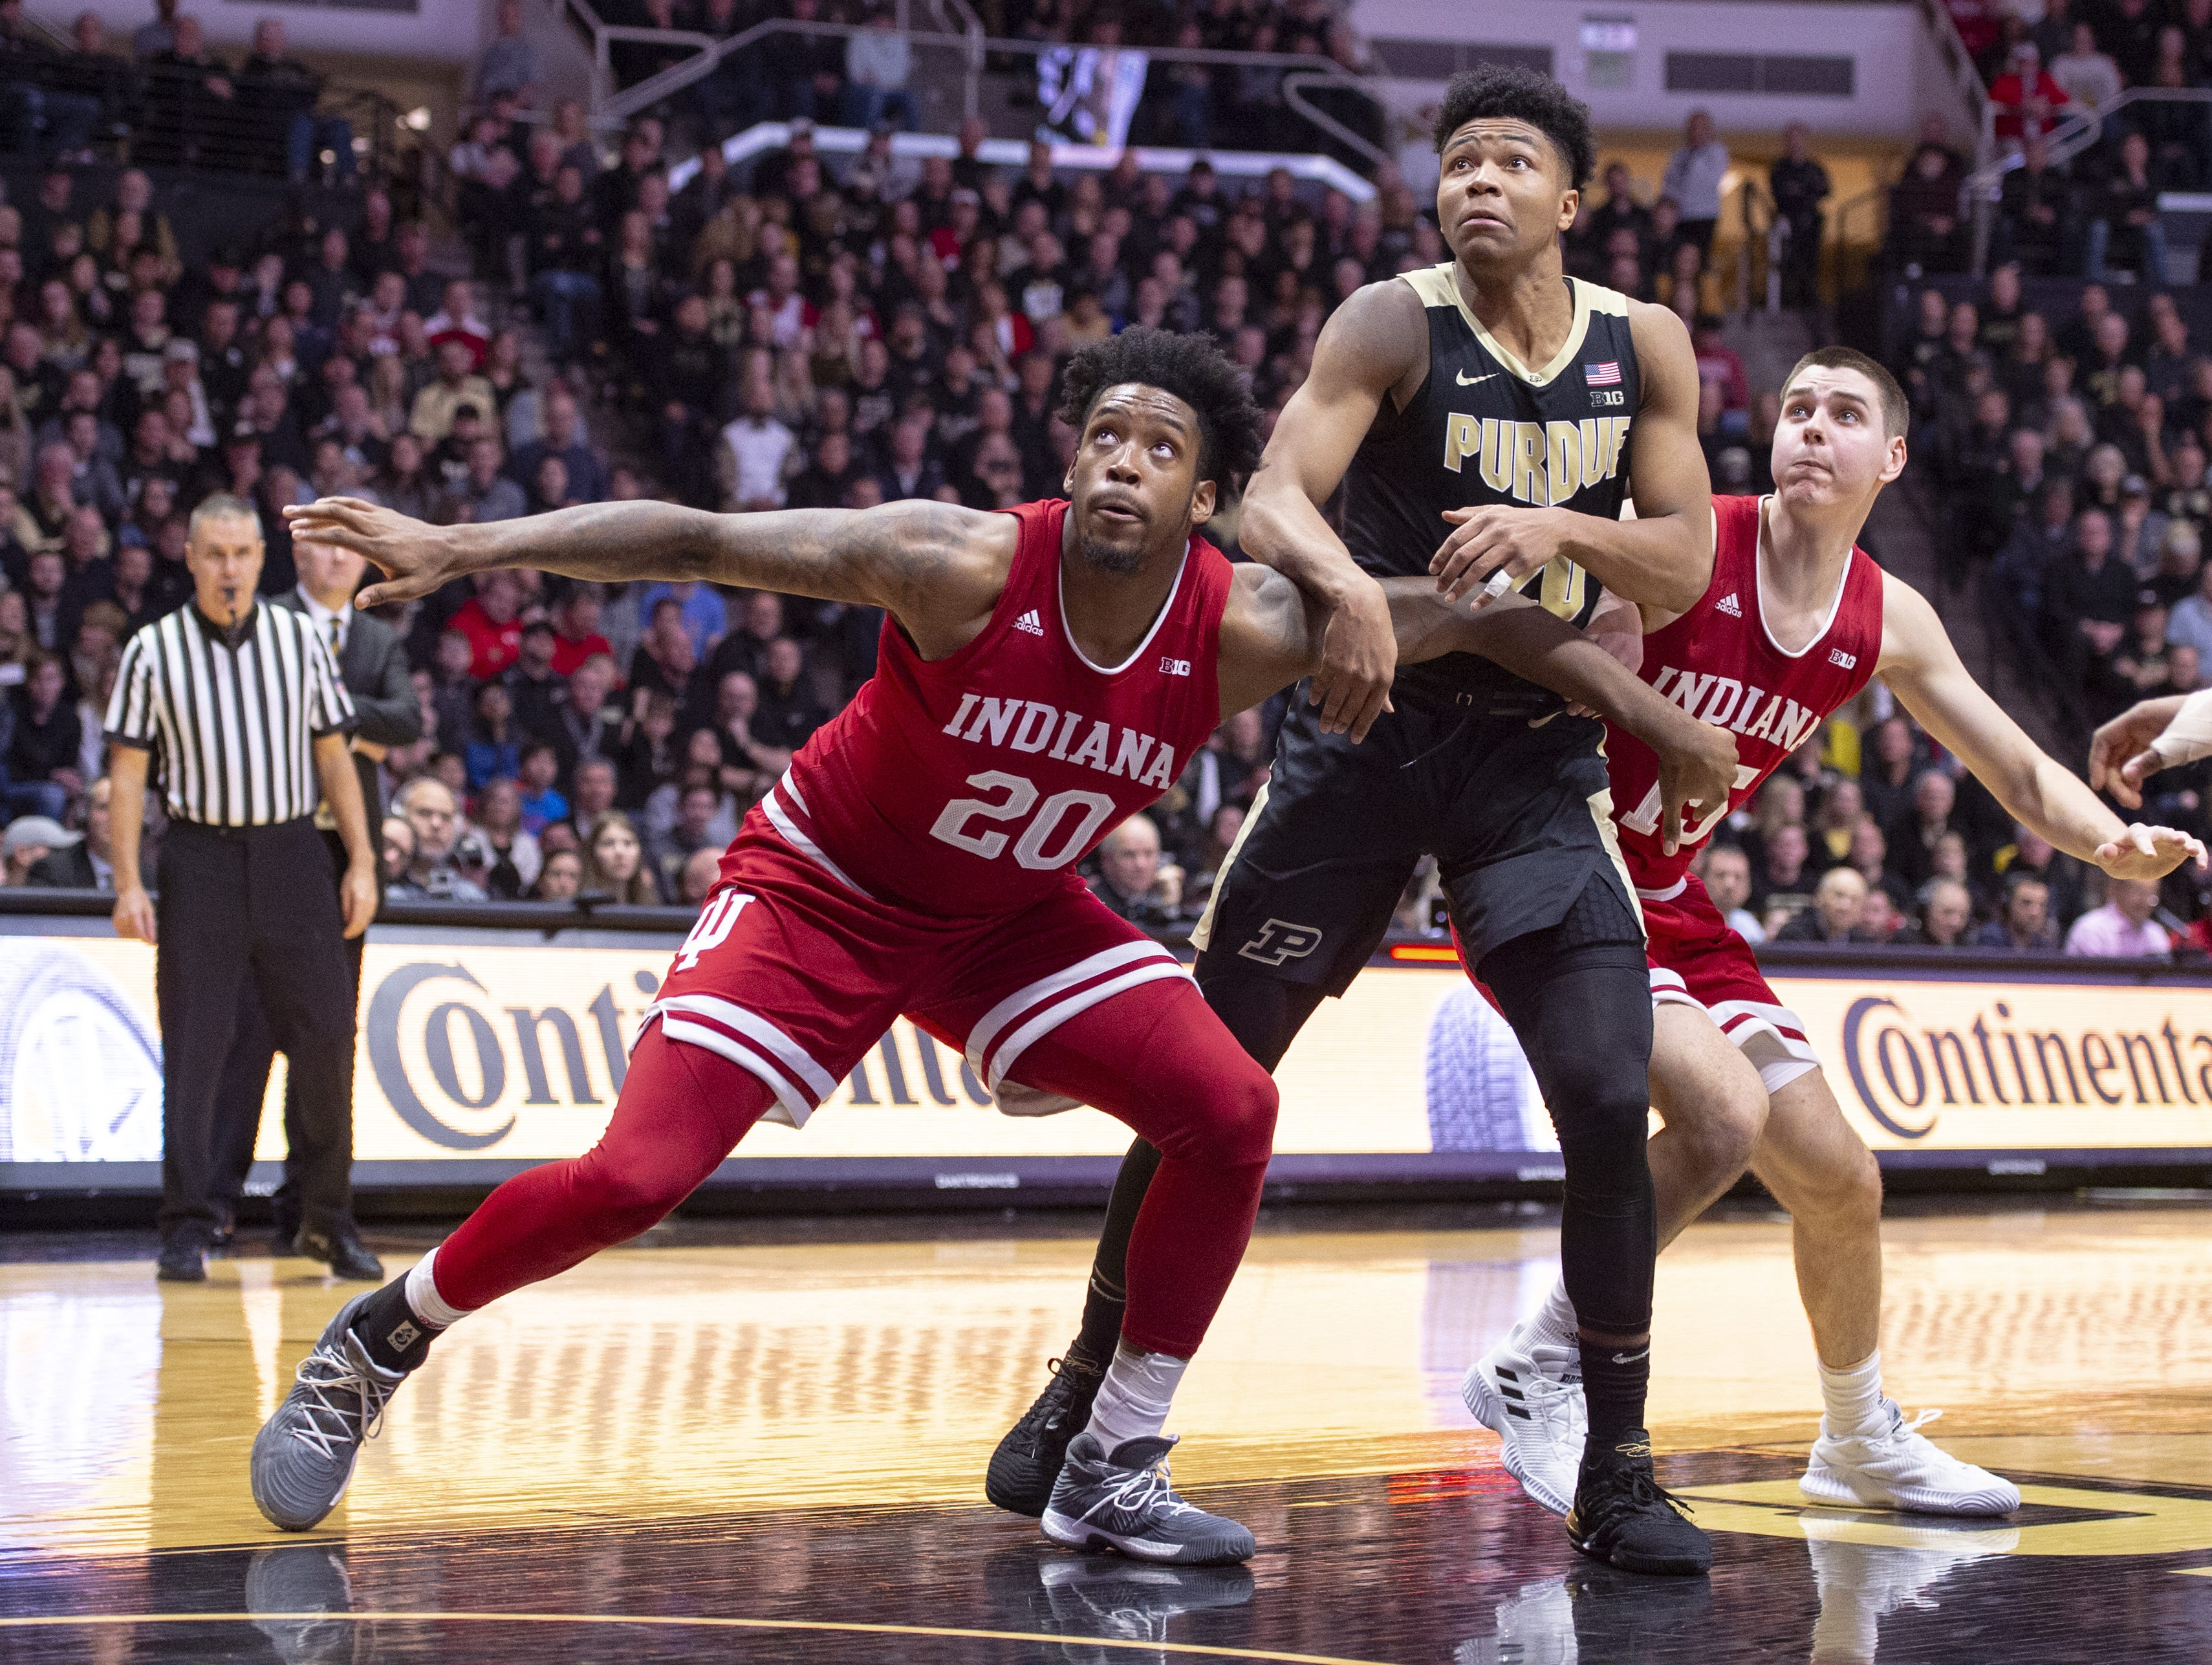 Indiana Hoosiers forward De'Ron Davis (20), leftest and guard Zach McRoberts (15) battle Purdue Boilermakers guard Nojel Eastern (20) for position during the second half of action. Purdue hosted Indiana in a BigTen men's basketball matchup, Saturday, Jan. 19, 2019. Purdue won 70-55.